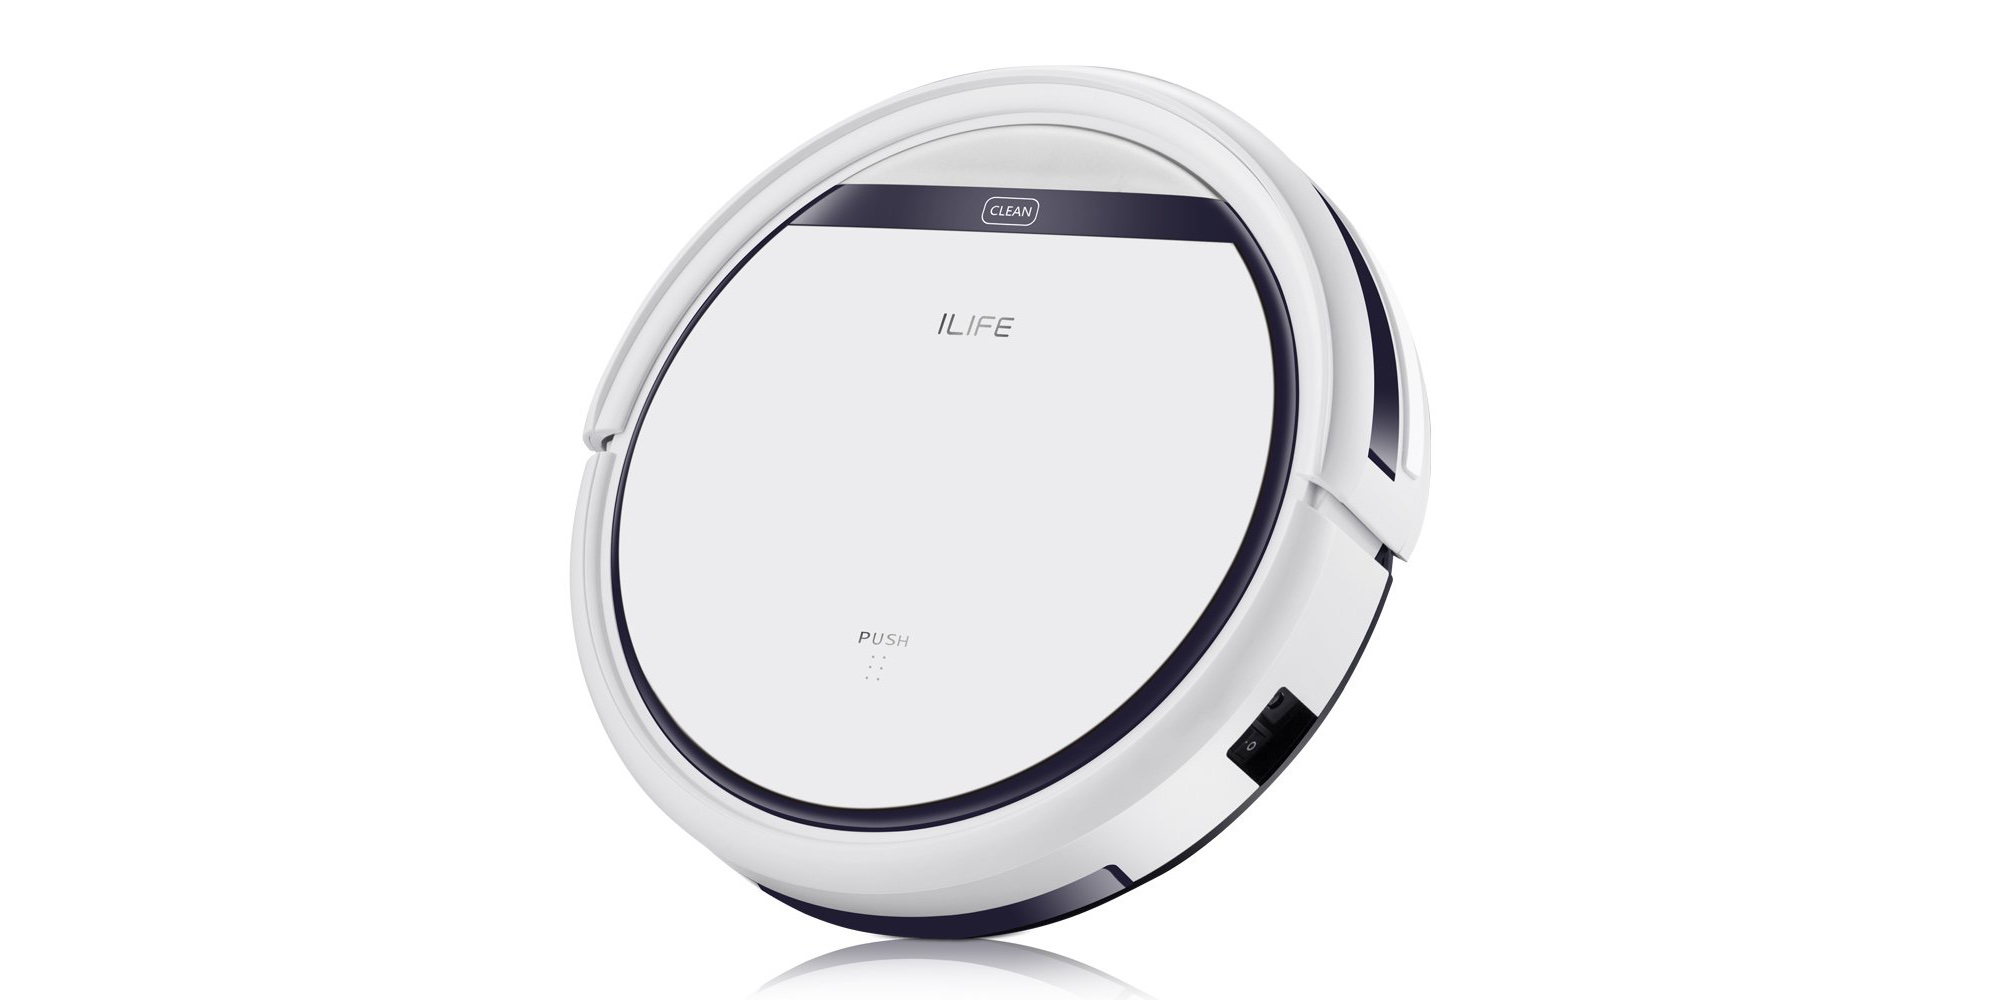 ILIFE's V3s Pro Robotic Vacuum can tackle pet hair, more at $119 (Reg. $160) - 9to5Toys